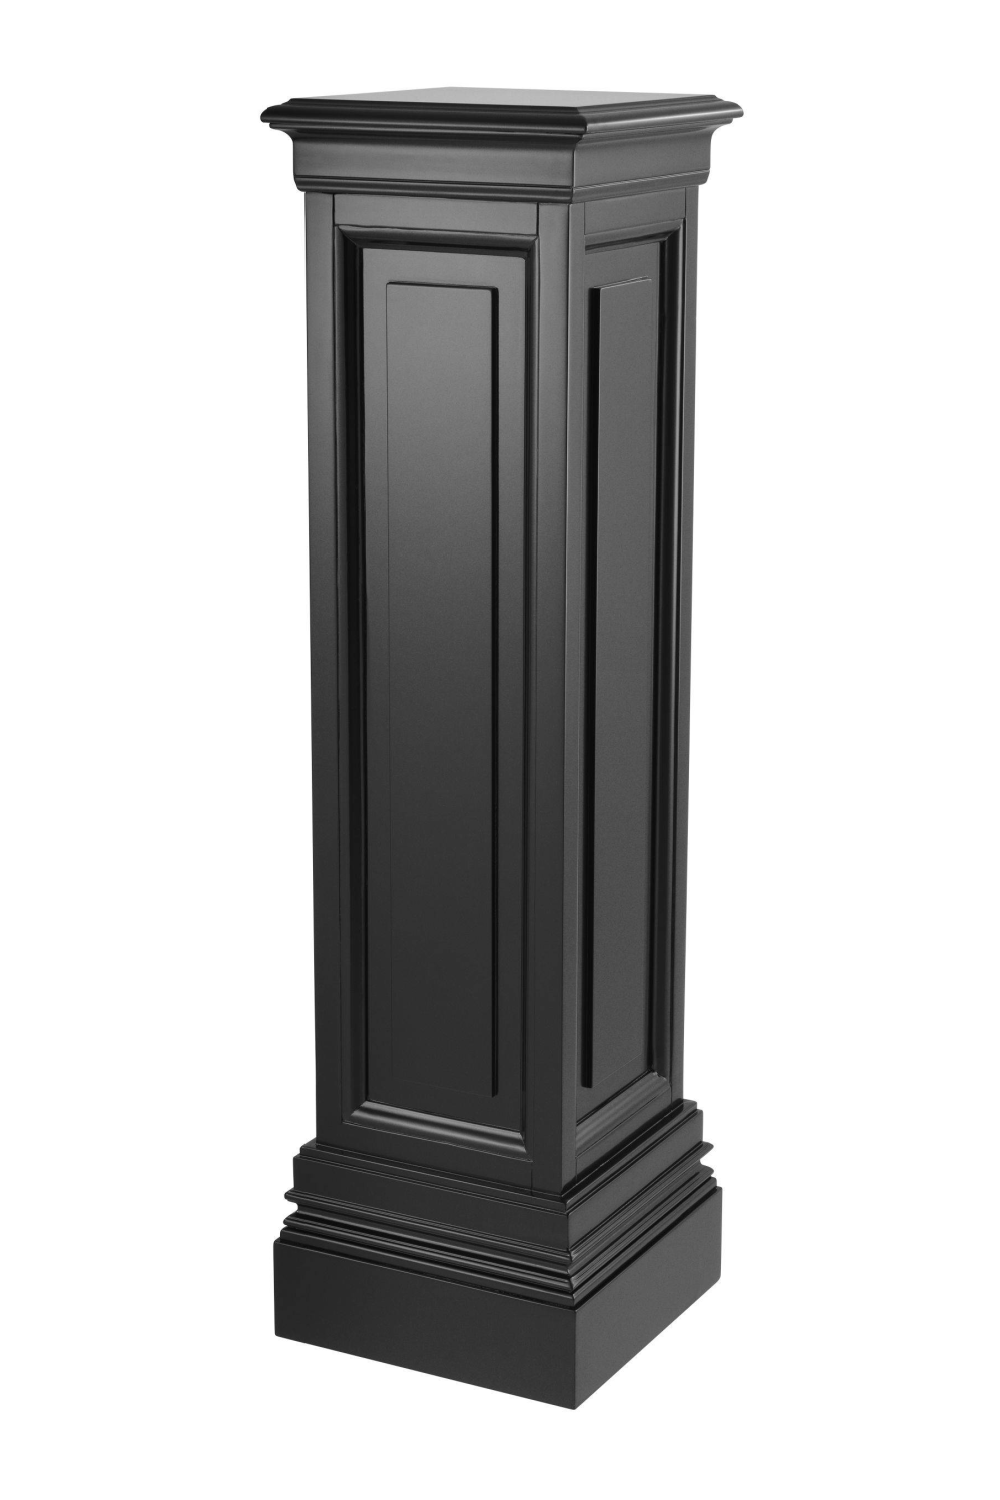 Black Wooden Column - L | Eichholtz Salvatore | Woodfurniture.com